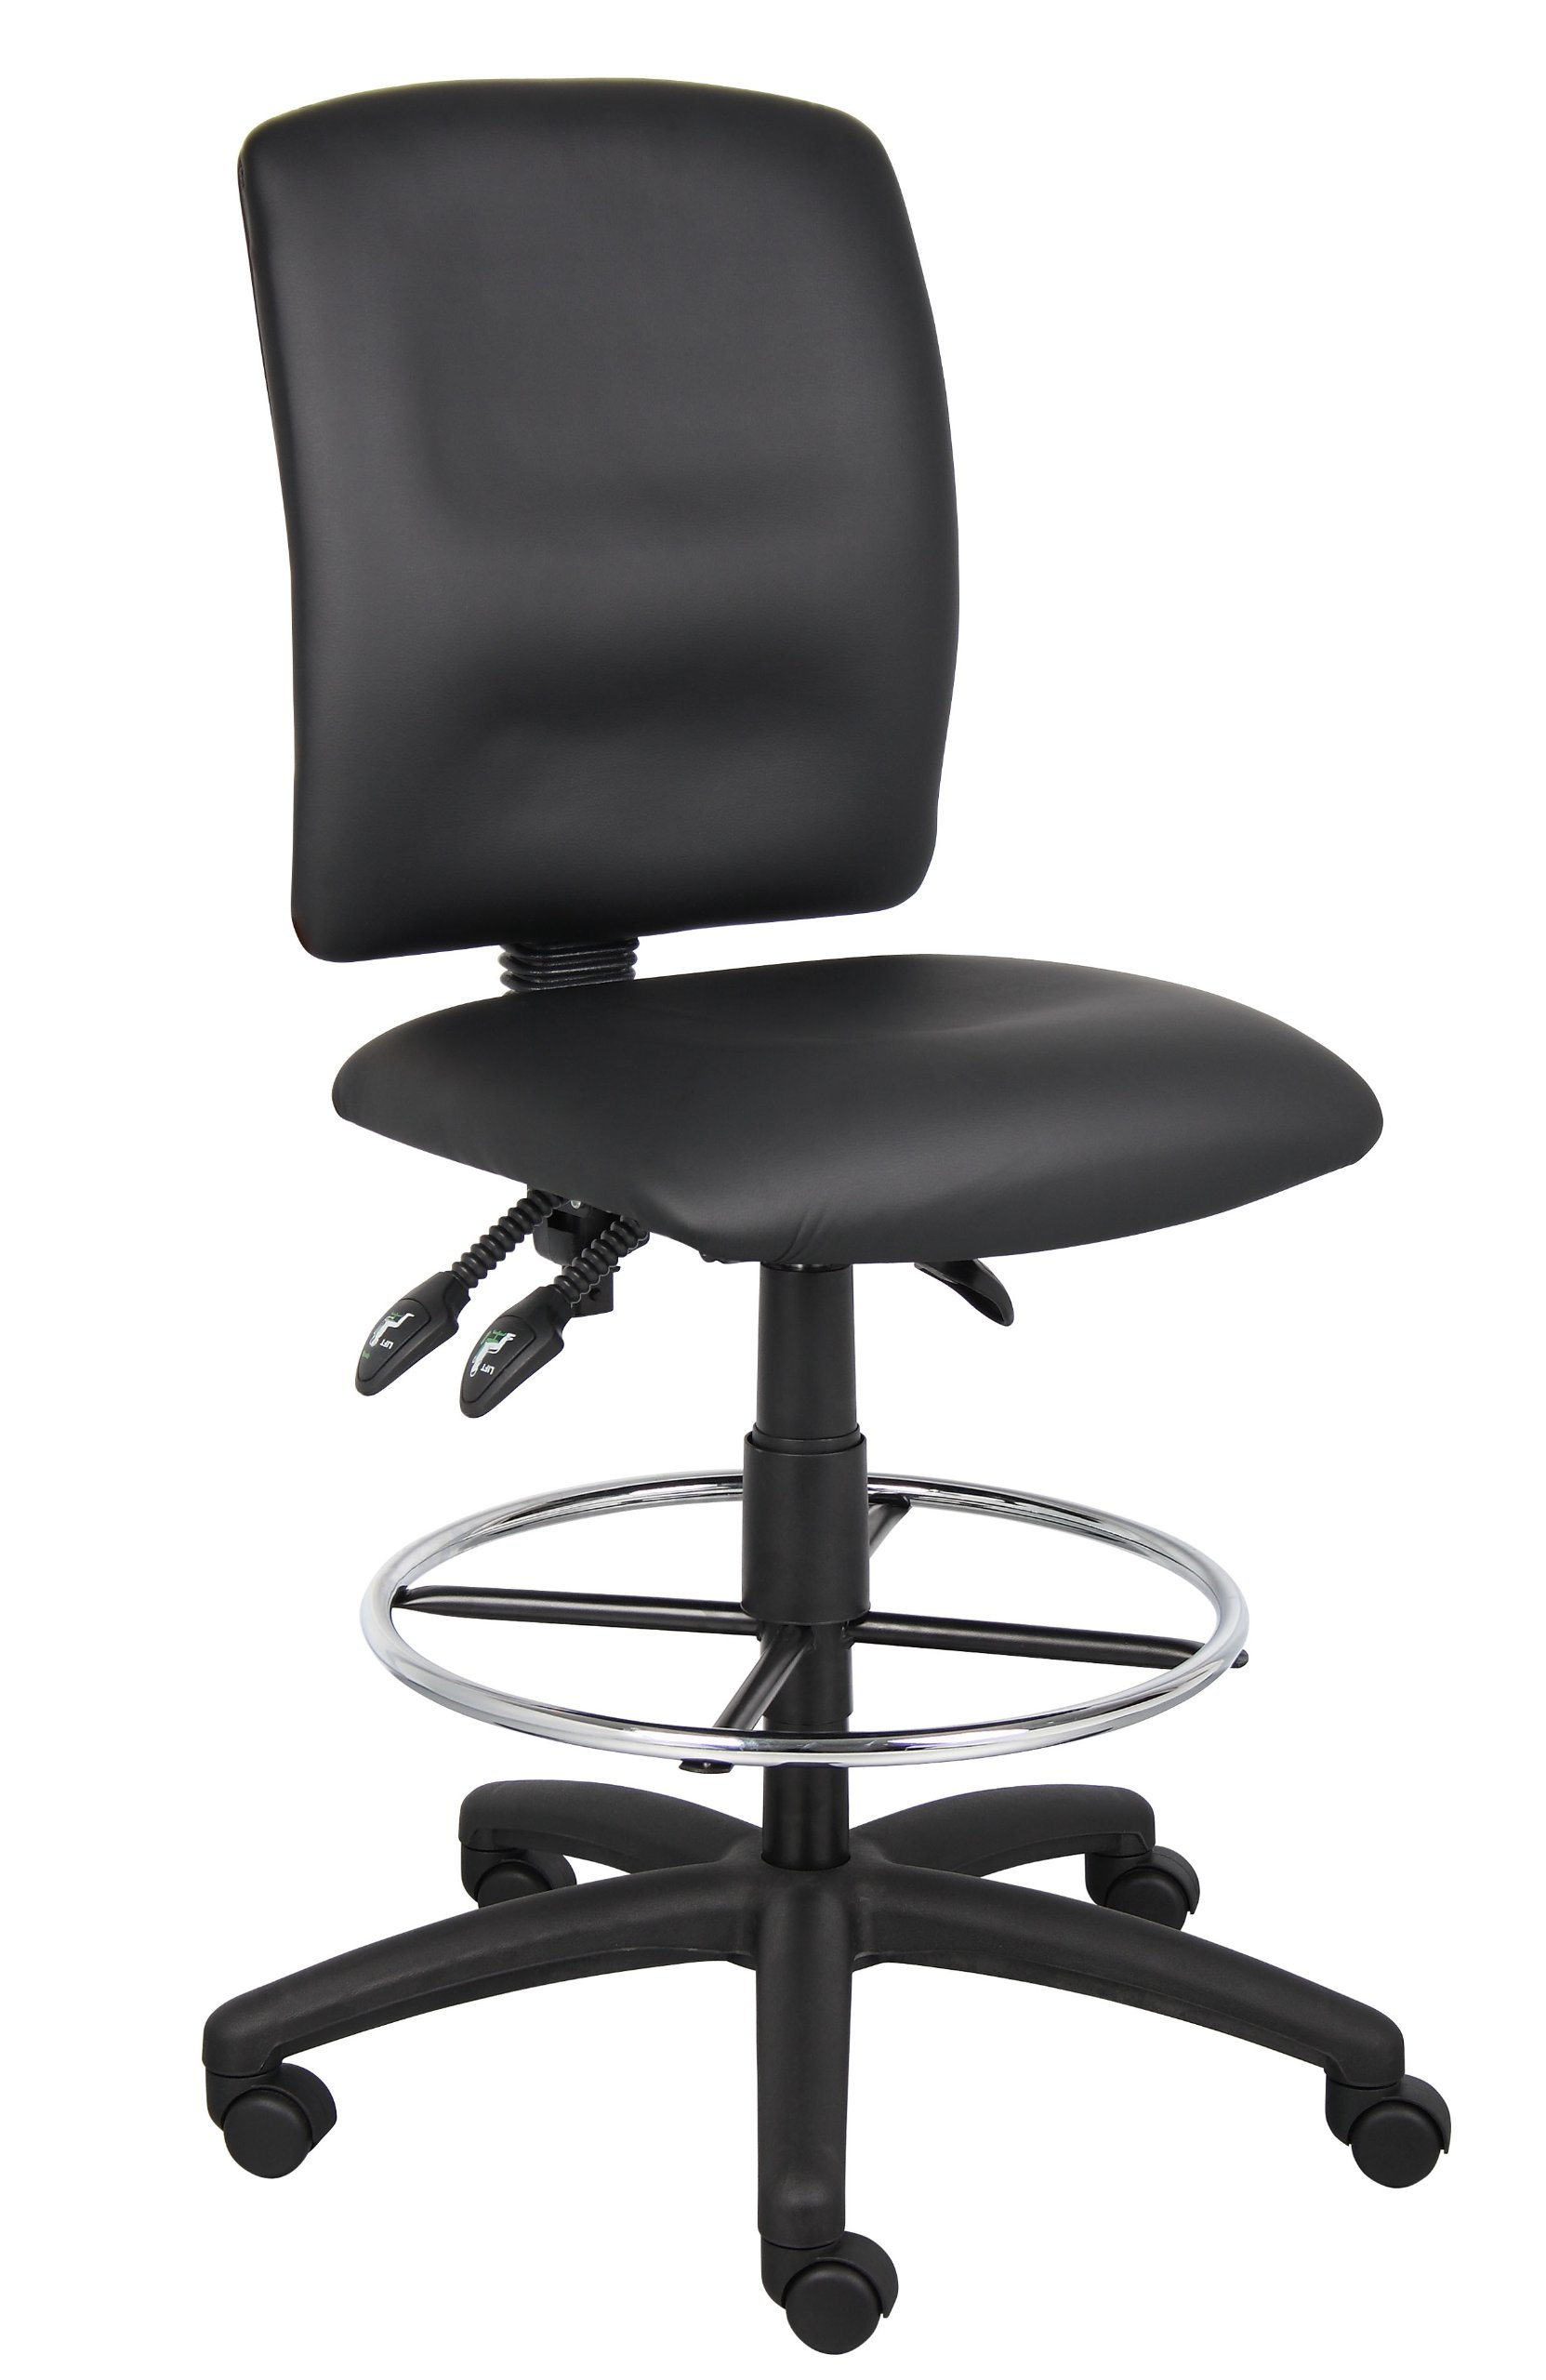 Boss Office Products B1645 Multi-Function LeatherPlus Drafting Stool without Arms in Black